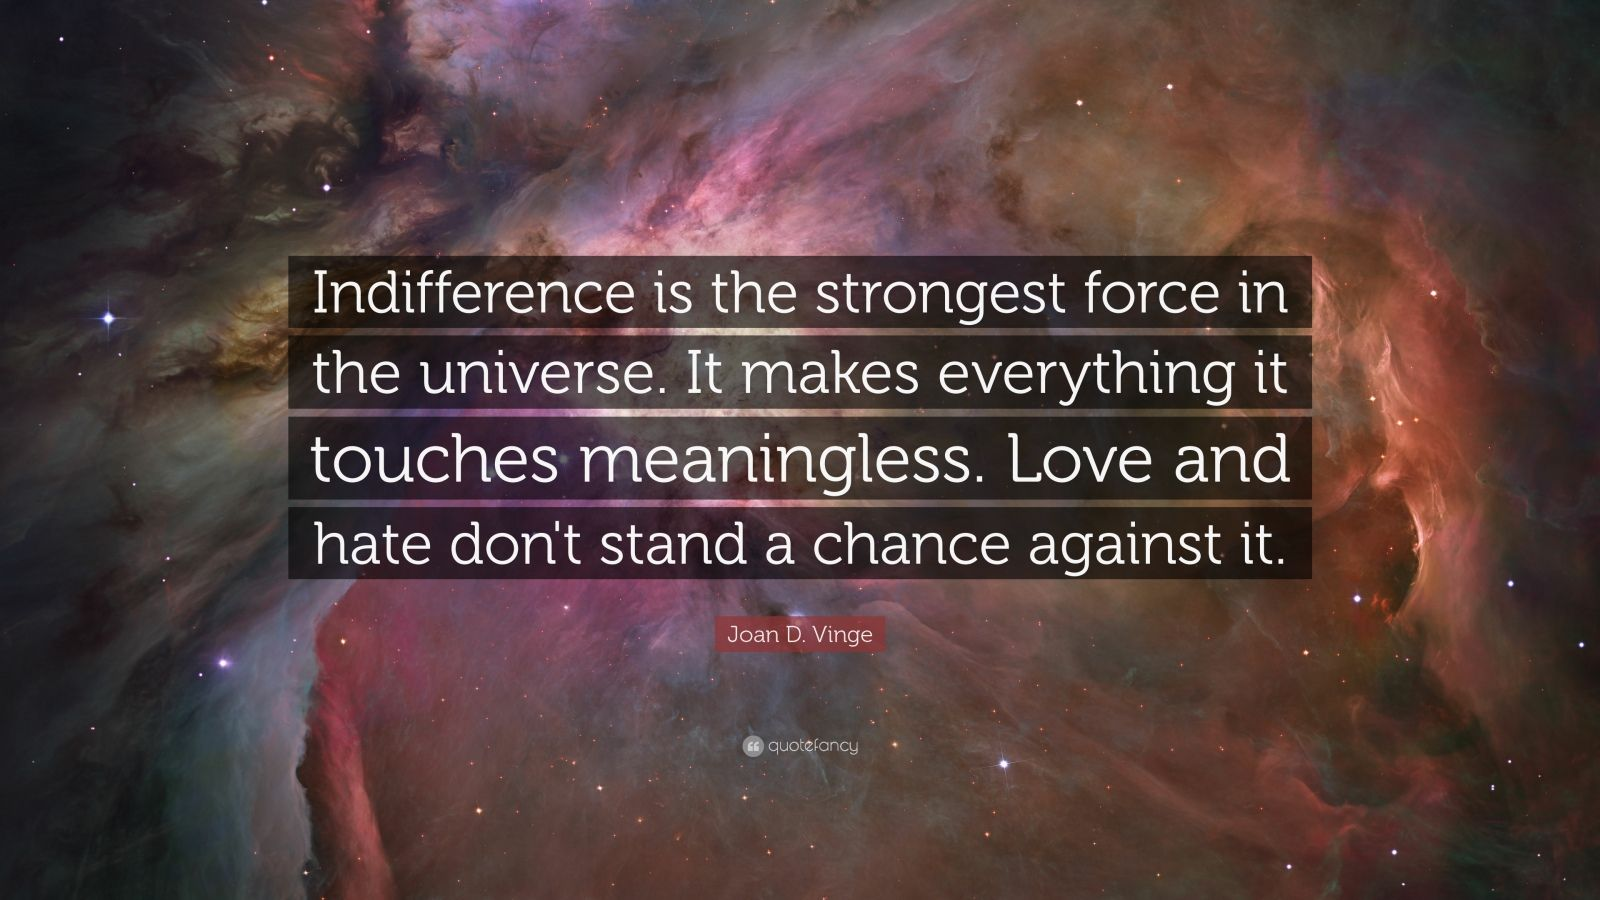 """Joan D. Vinge Quote: """"Indifference is the strongest force in the universe. It makes everything it touches meaningless. Love and hate don't stand a chance against it."""""""